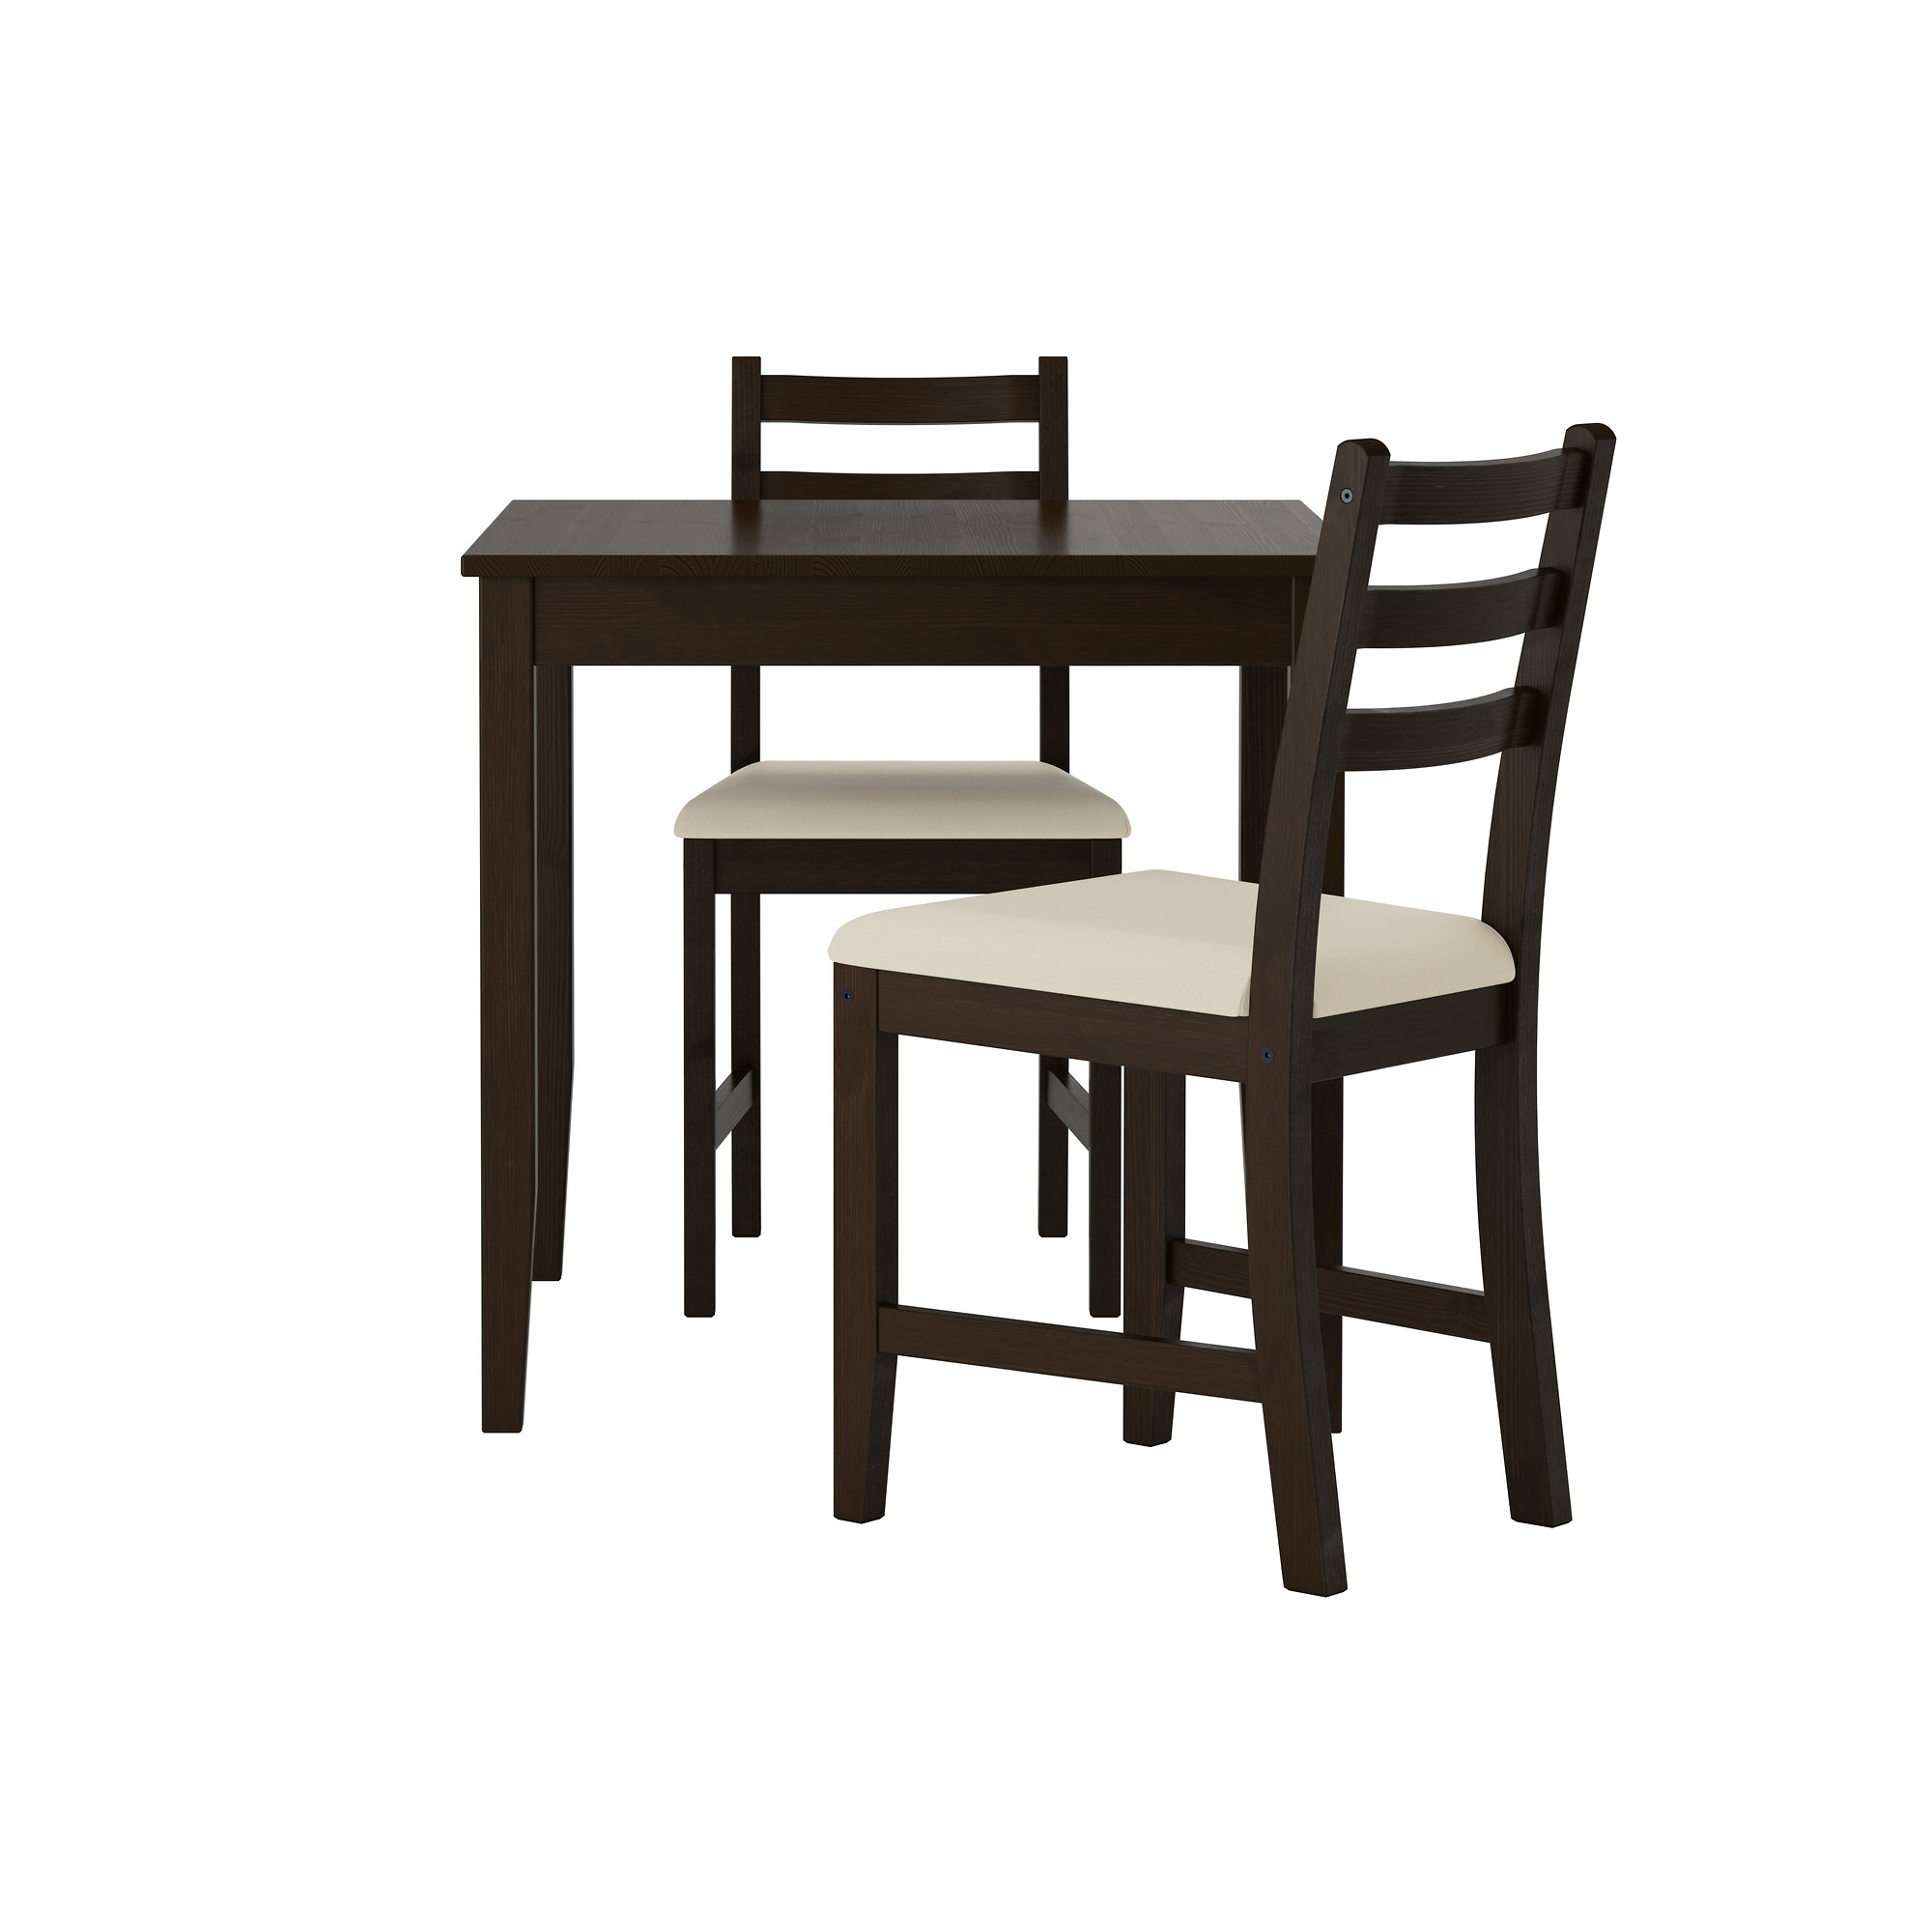 Well Liked Dining Table Sets For 2 Throughout Small Dining Table Sets 2 Seater Dining Table Chairs, Ikea Table (View 17 of 25)